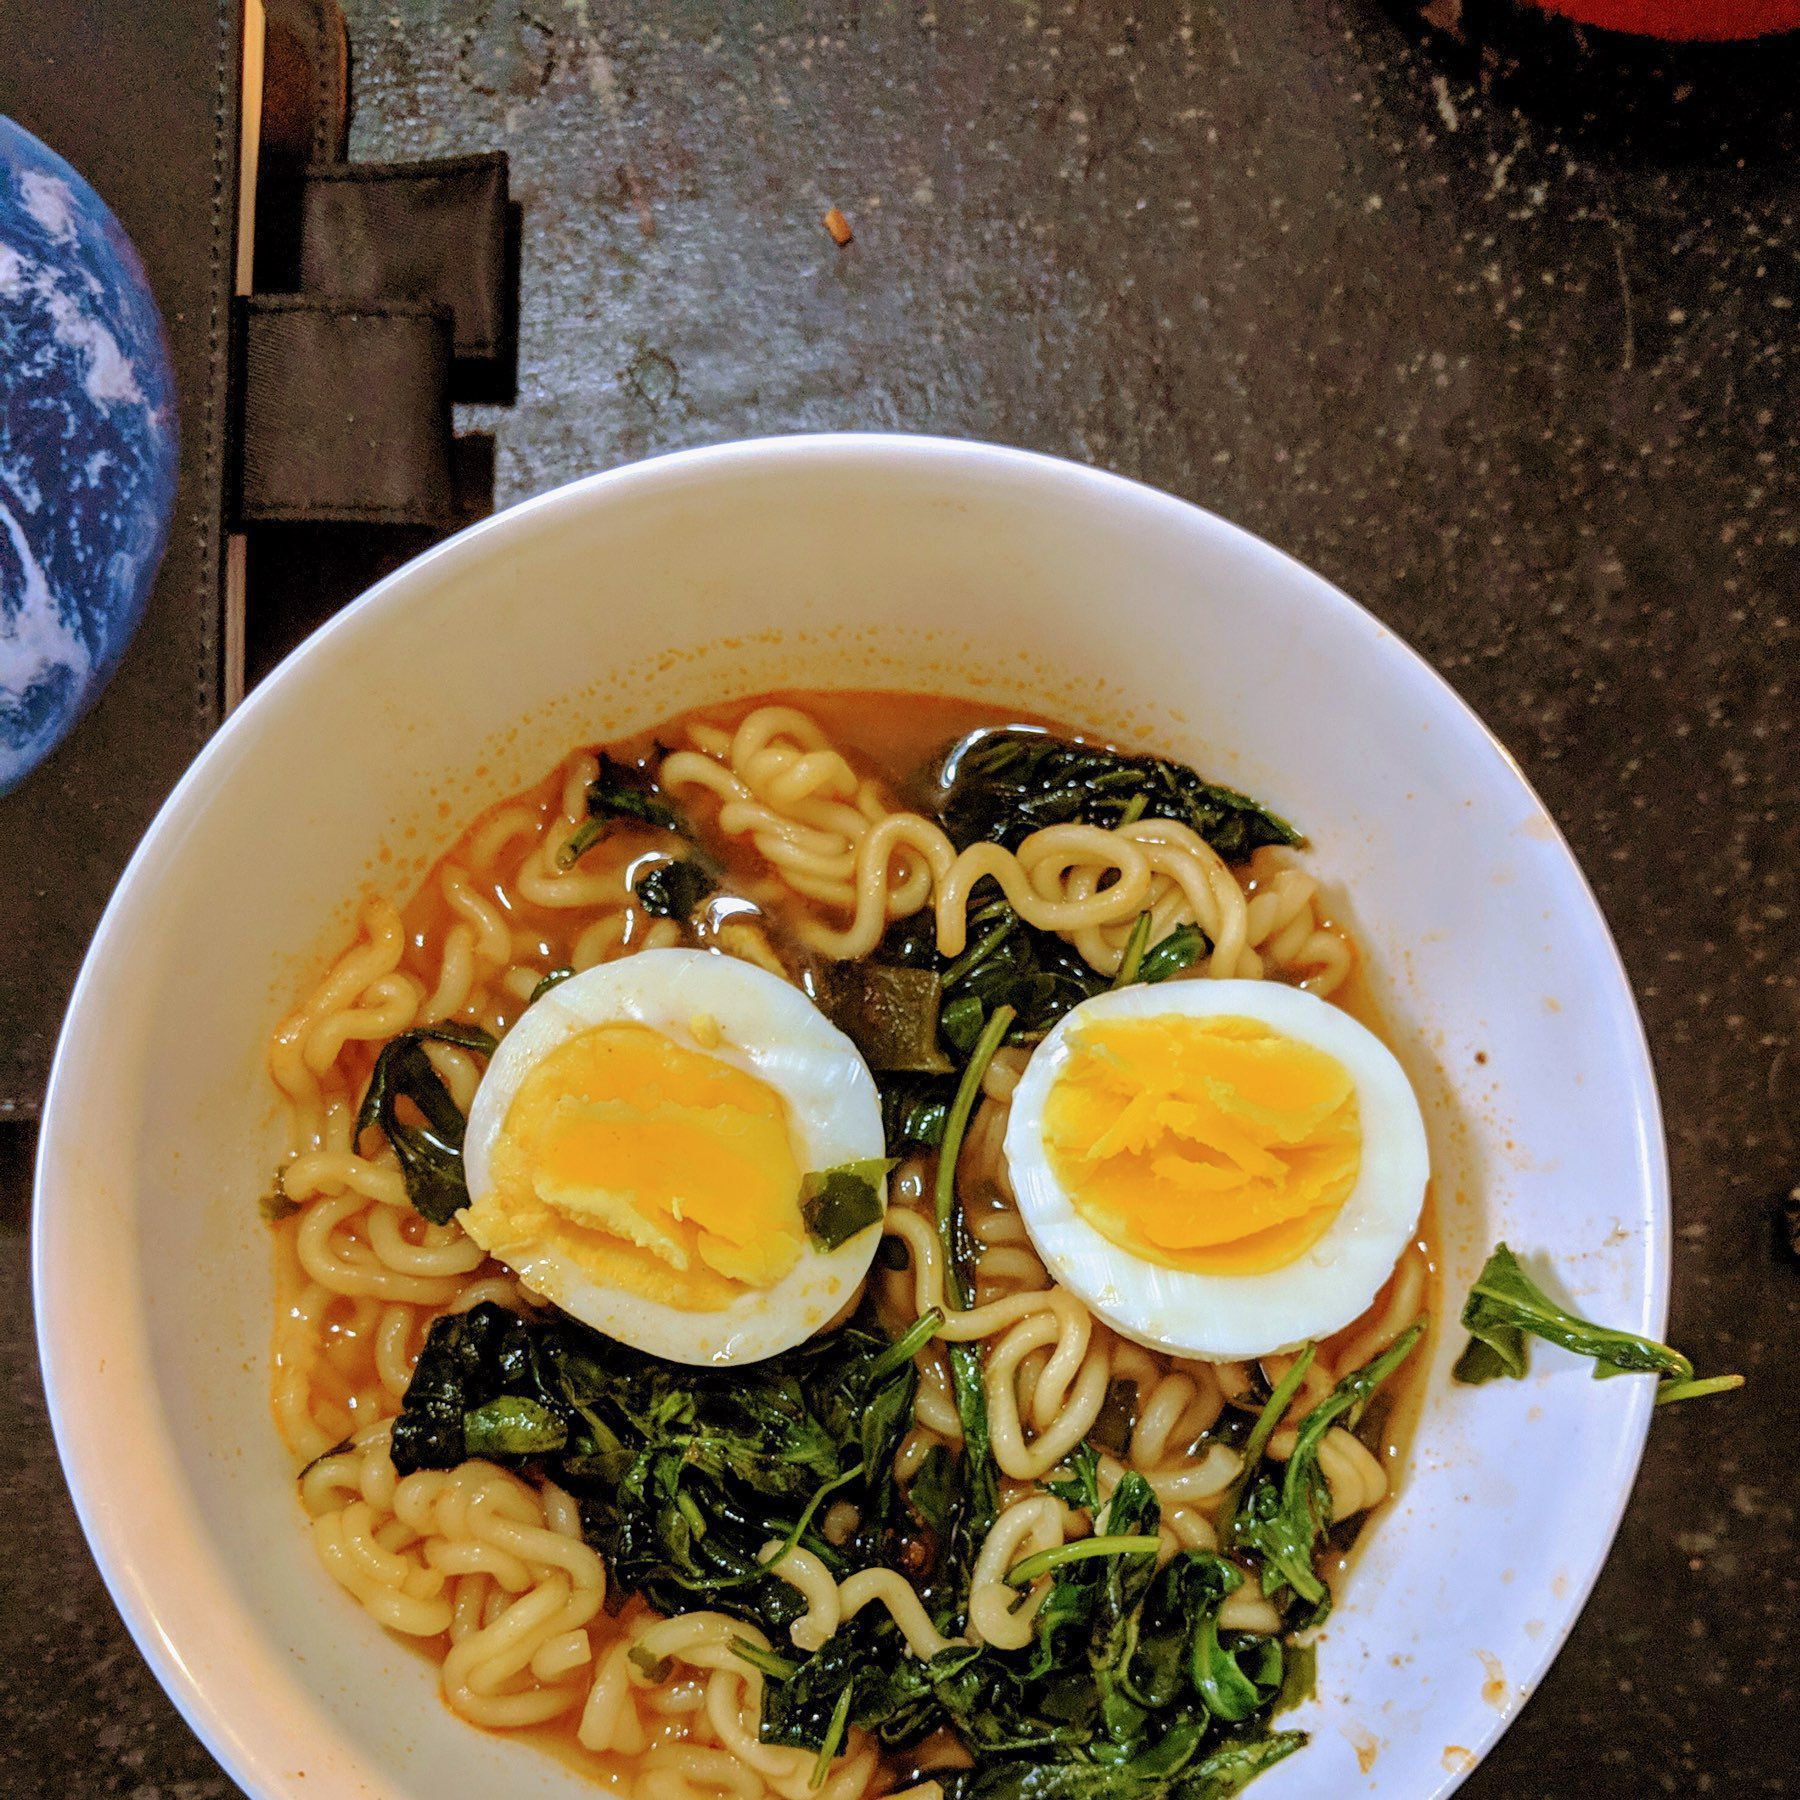 Ramen noodles in spicy broth with arugula and face up hardboiled egg